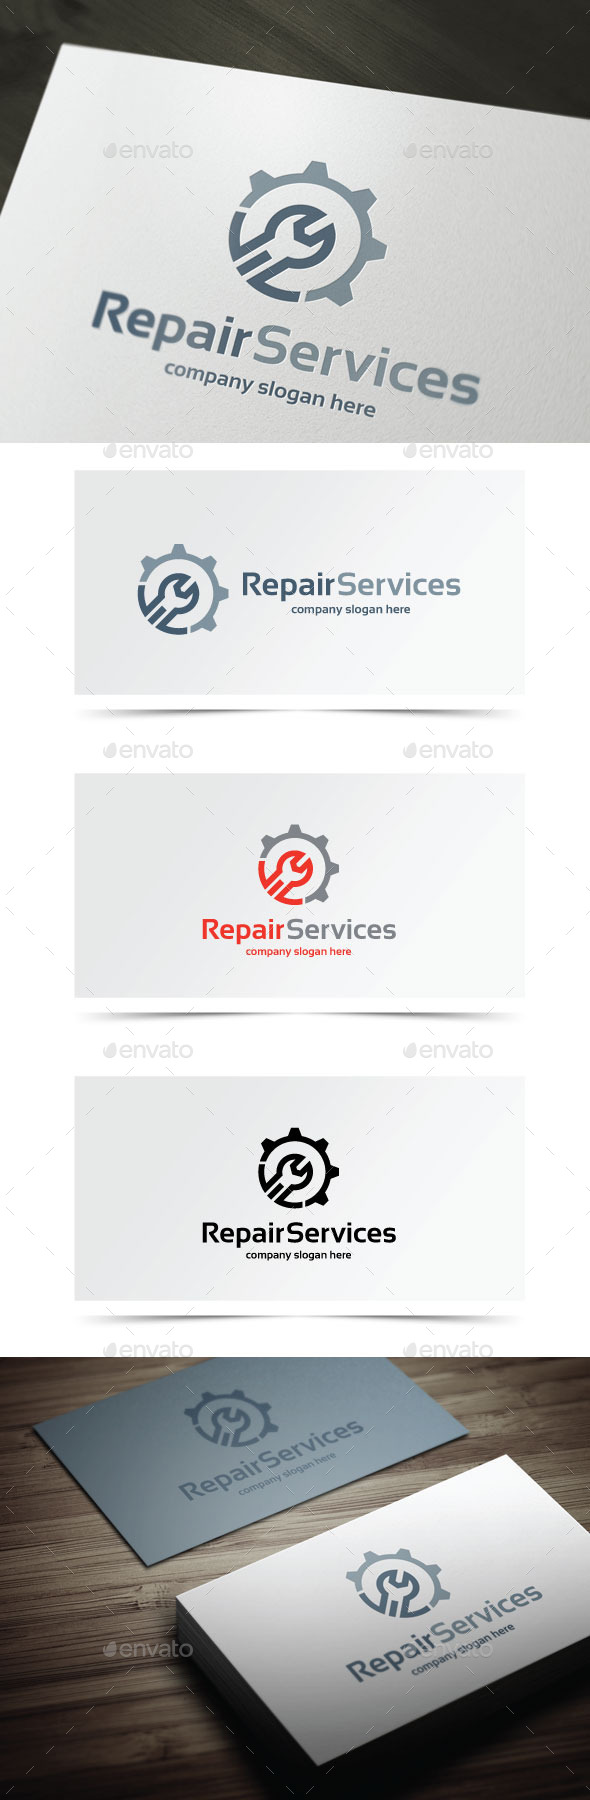 GraphicRiver Repair Services 10406740